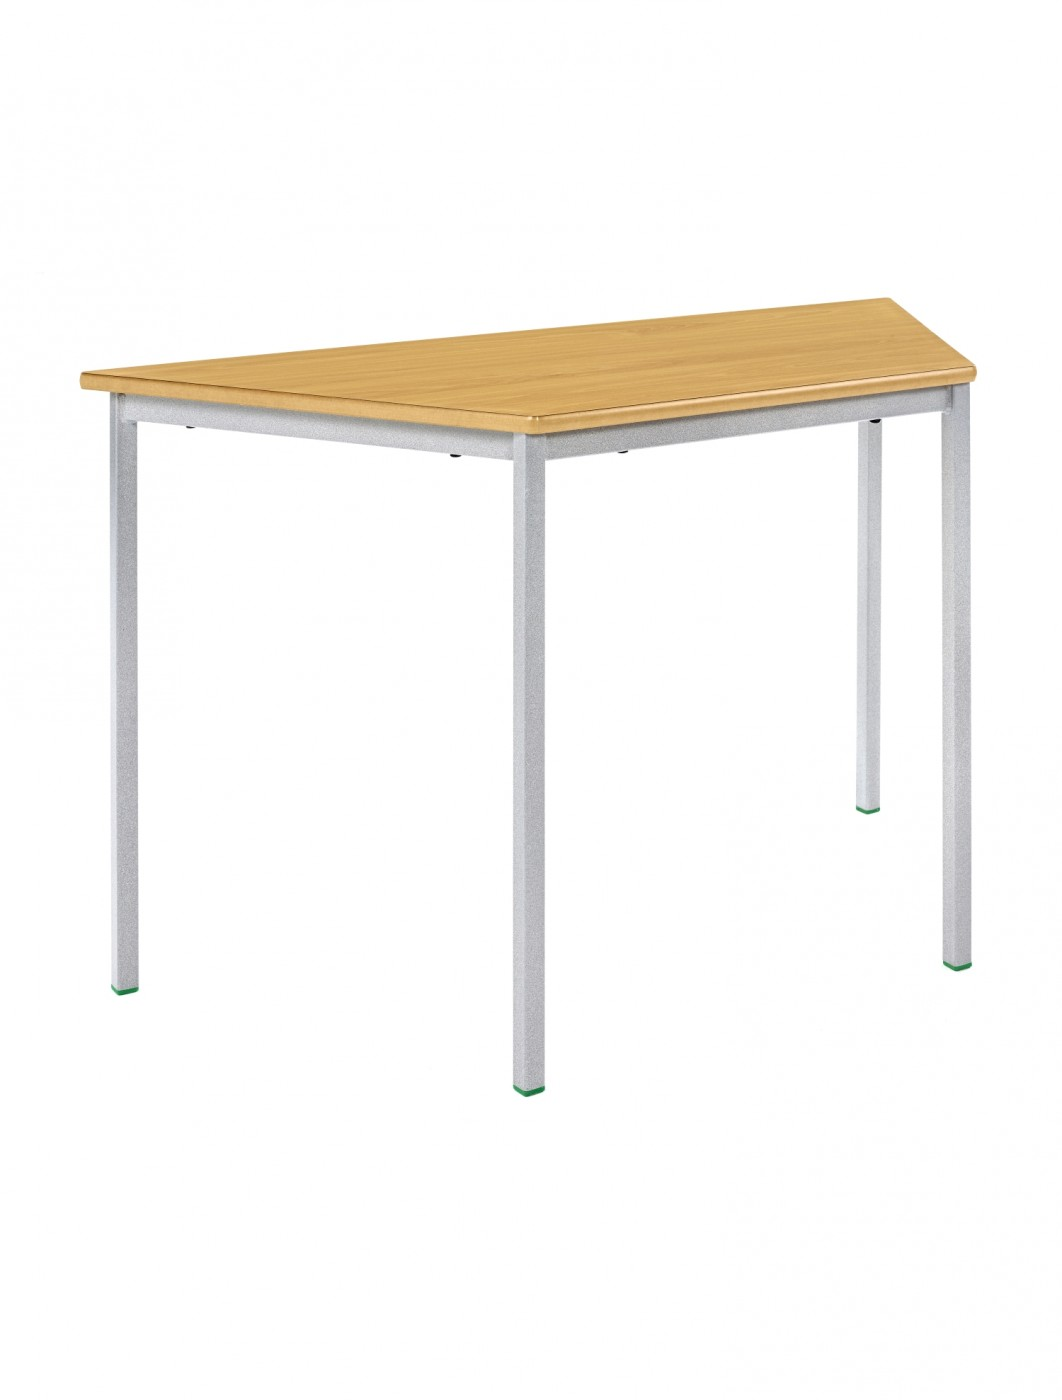 virco school desks within for student table chairs wish classroom furniture tables intended